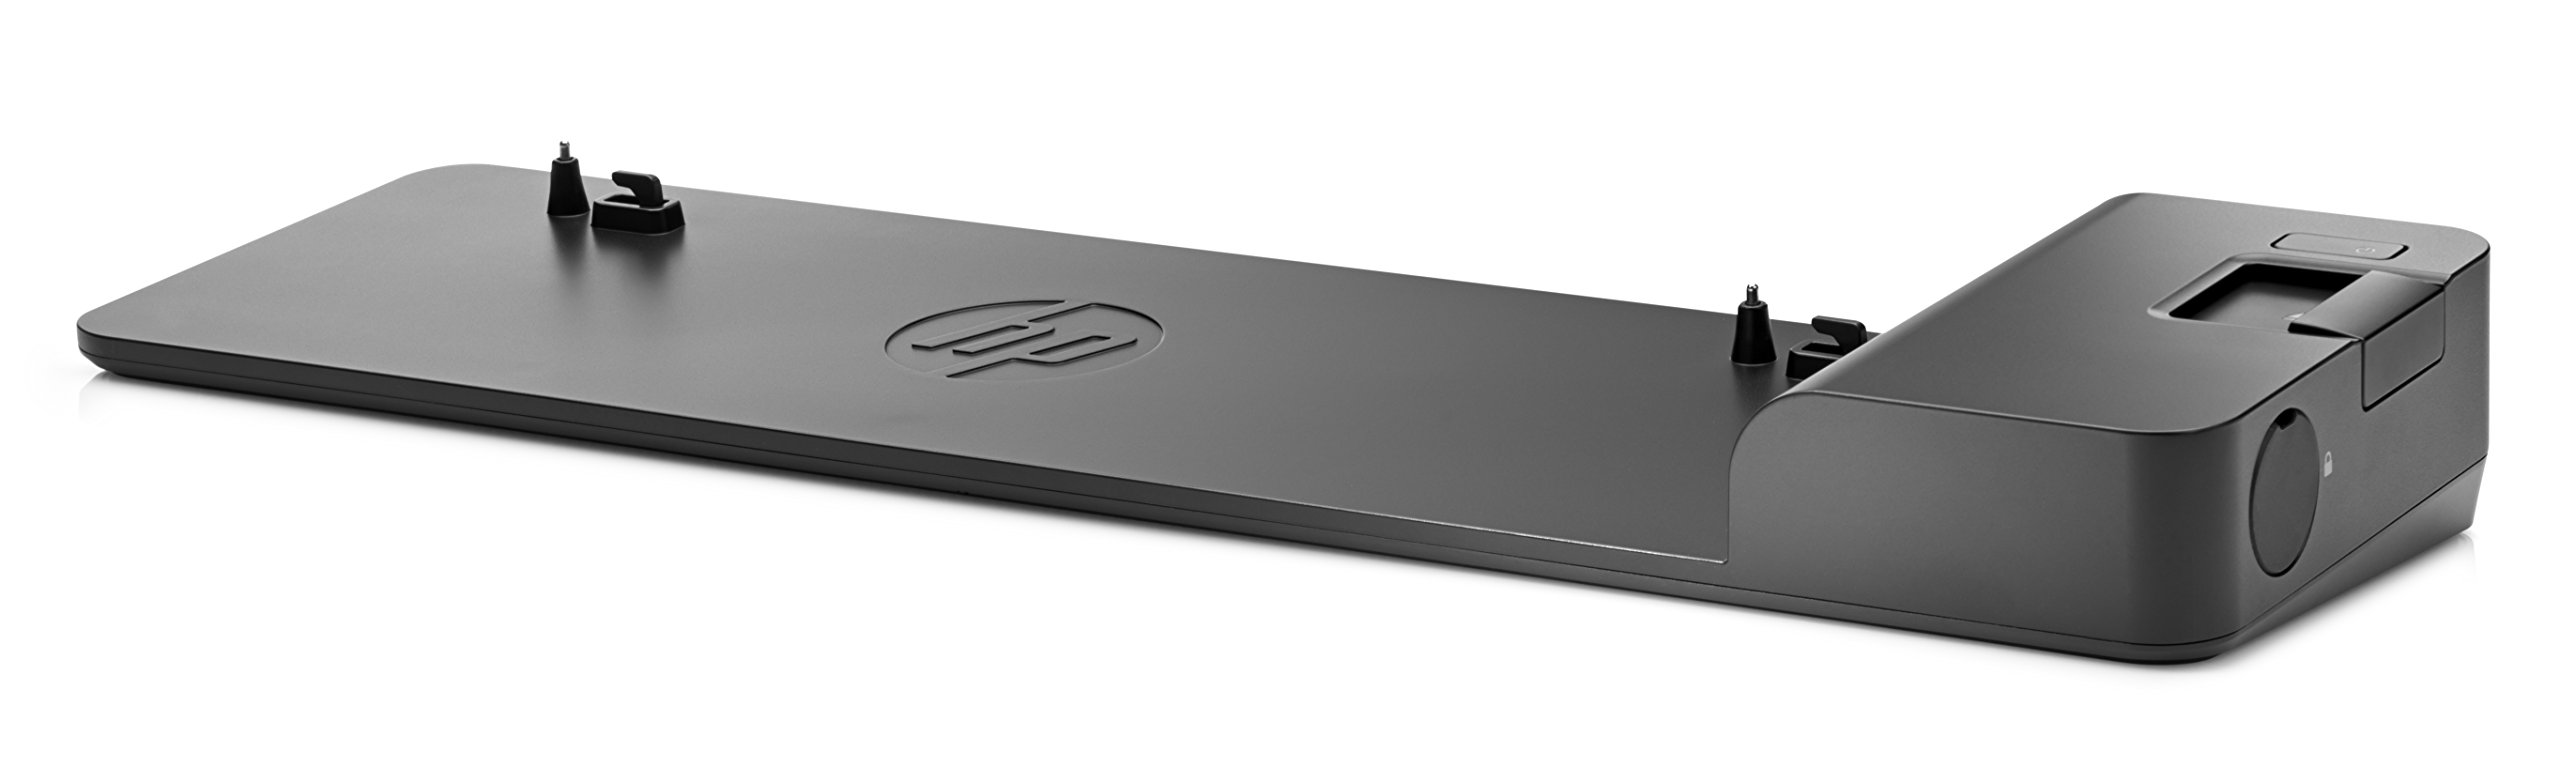 HP UltraSlim Dock 2013 Docking Station D9Y32 by HP